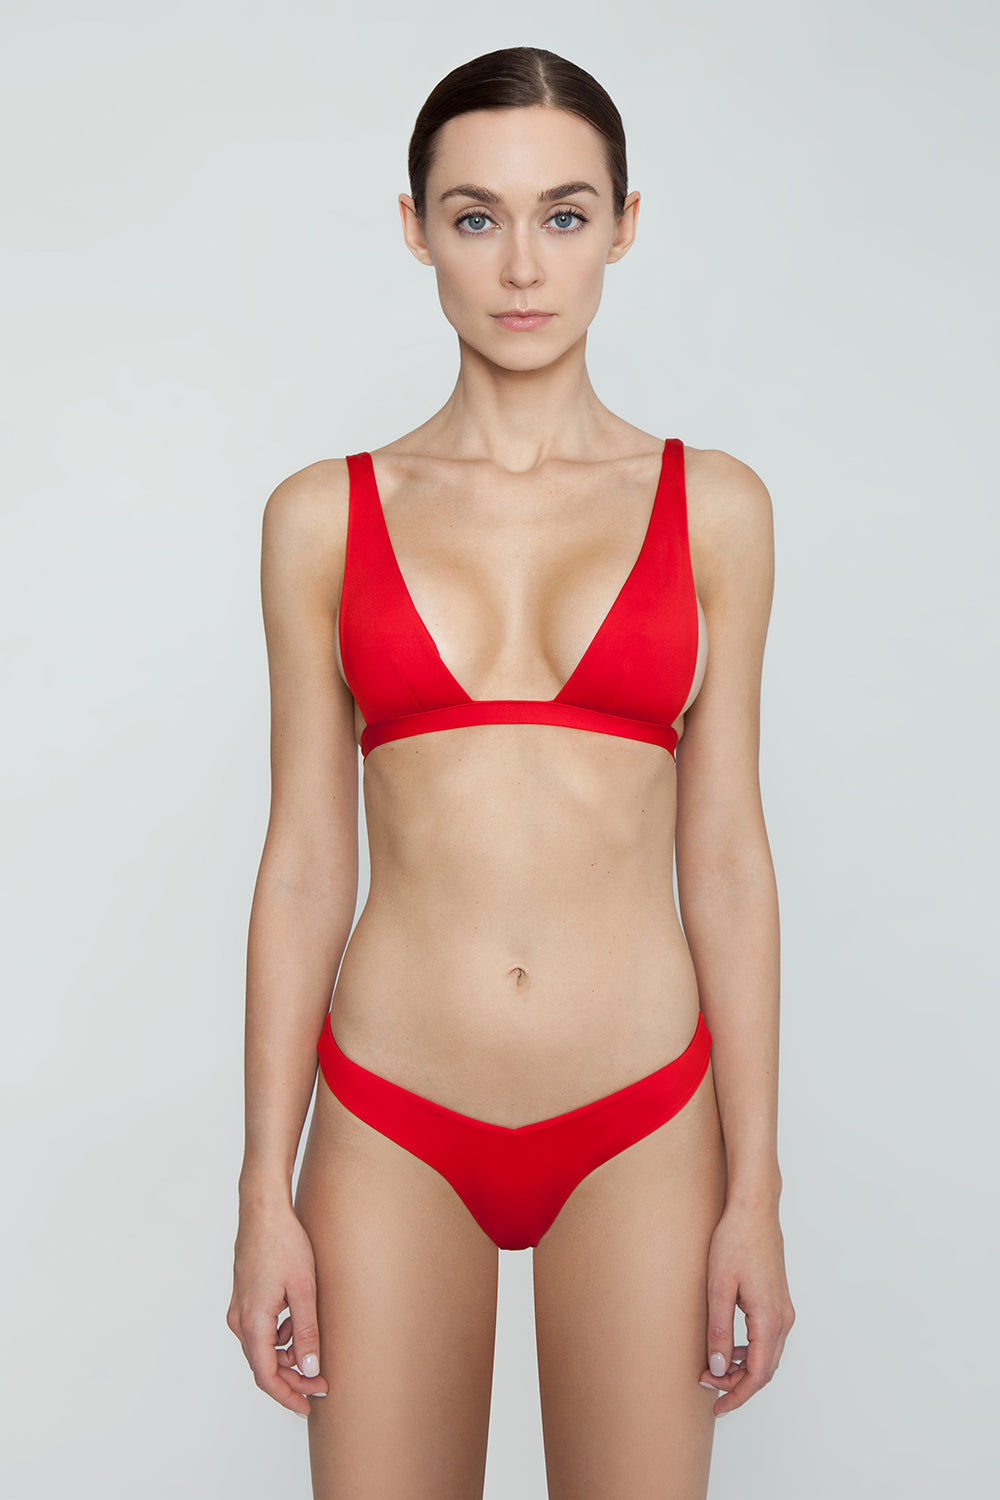 MONICA HANSEN BEACHWEAR Babe Watch V Bikini Bottom - Red Bikini Bottom | Red| Monica Hansen Beachwear Babe Watch V Bikini Bottom - Red Features:  Waist cut down in a V shape in front and in back Sides can be worn low rise or mid rise High cut leg  Cheeky coverage Italian fabric 85% Nylon 15% Elastane Manufactured in Italy Hand wash cold.  Dry Flat Front View